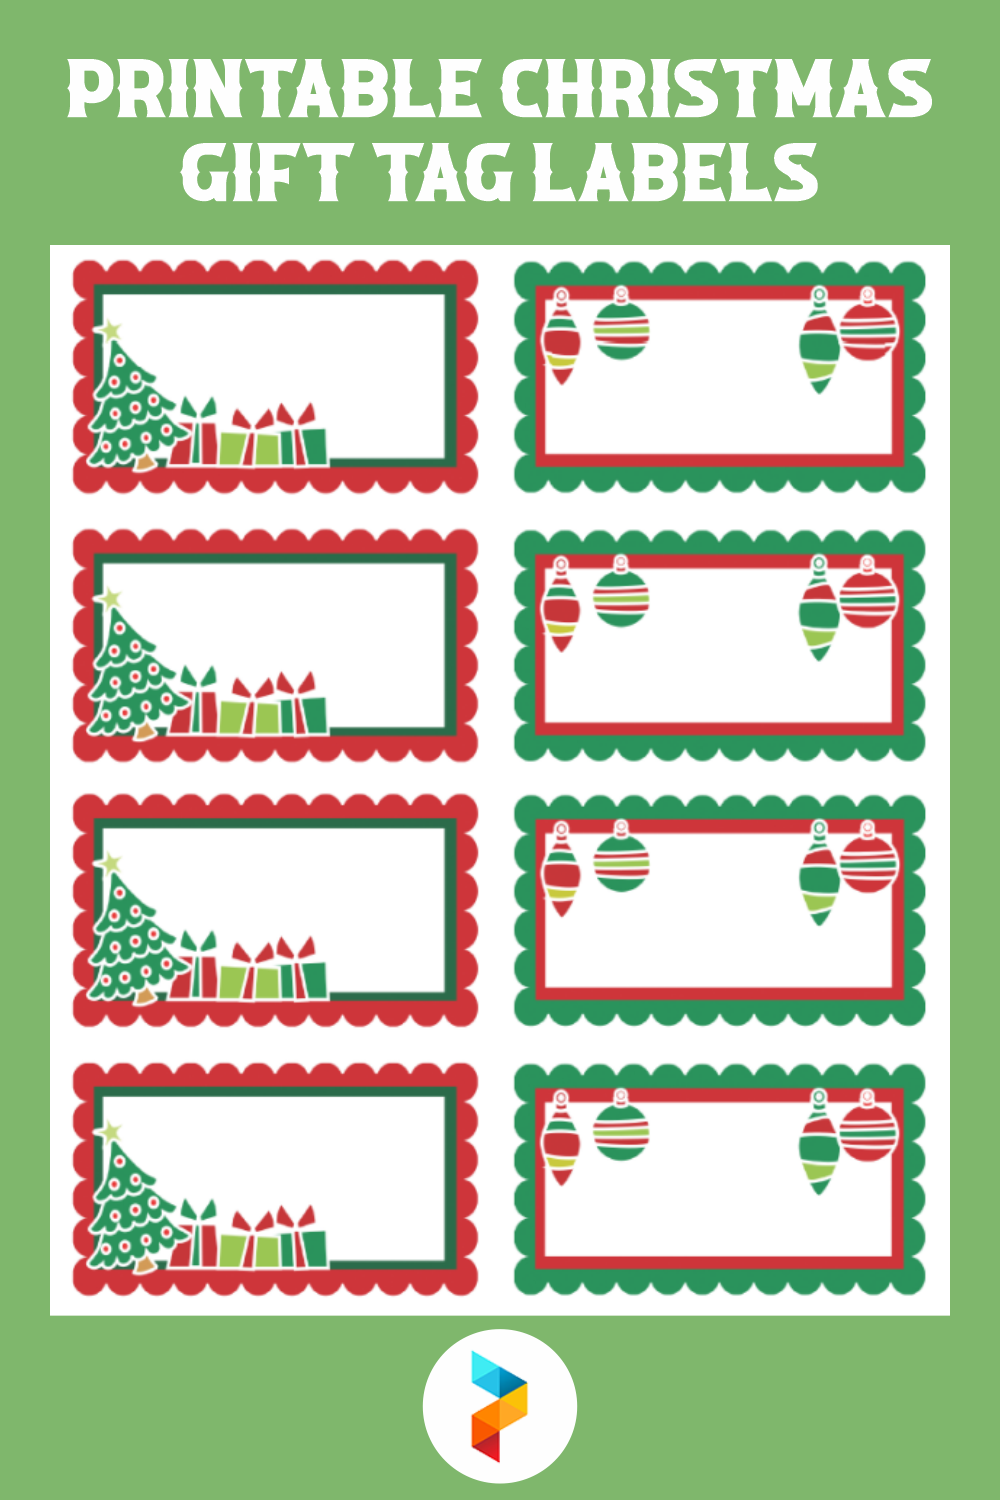 Printable Christmas Gift Tag Labels